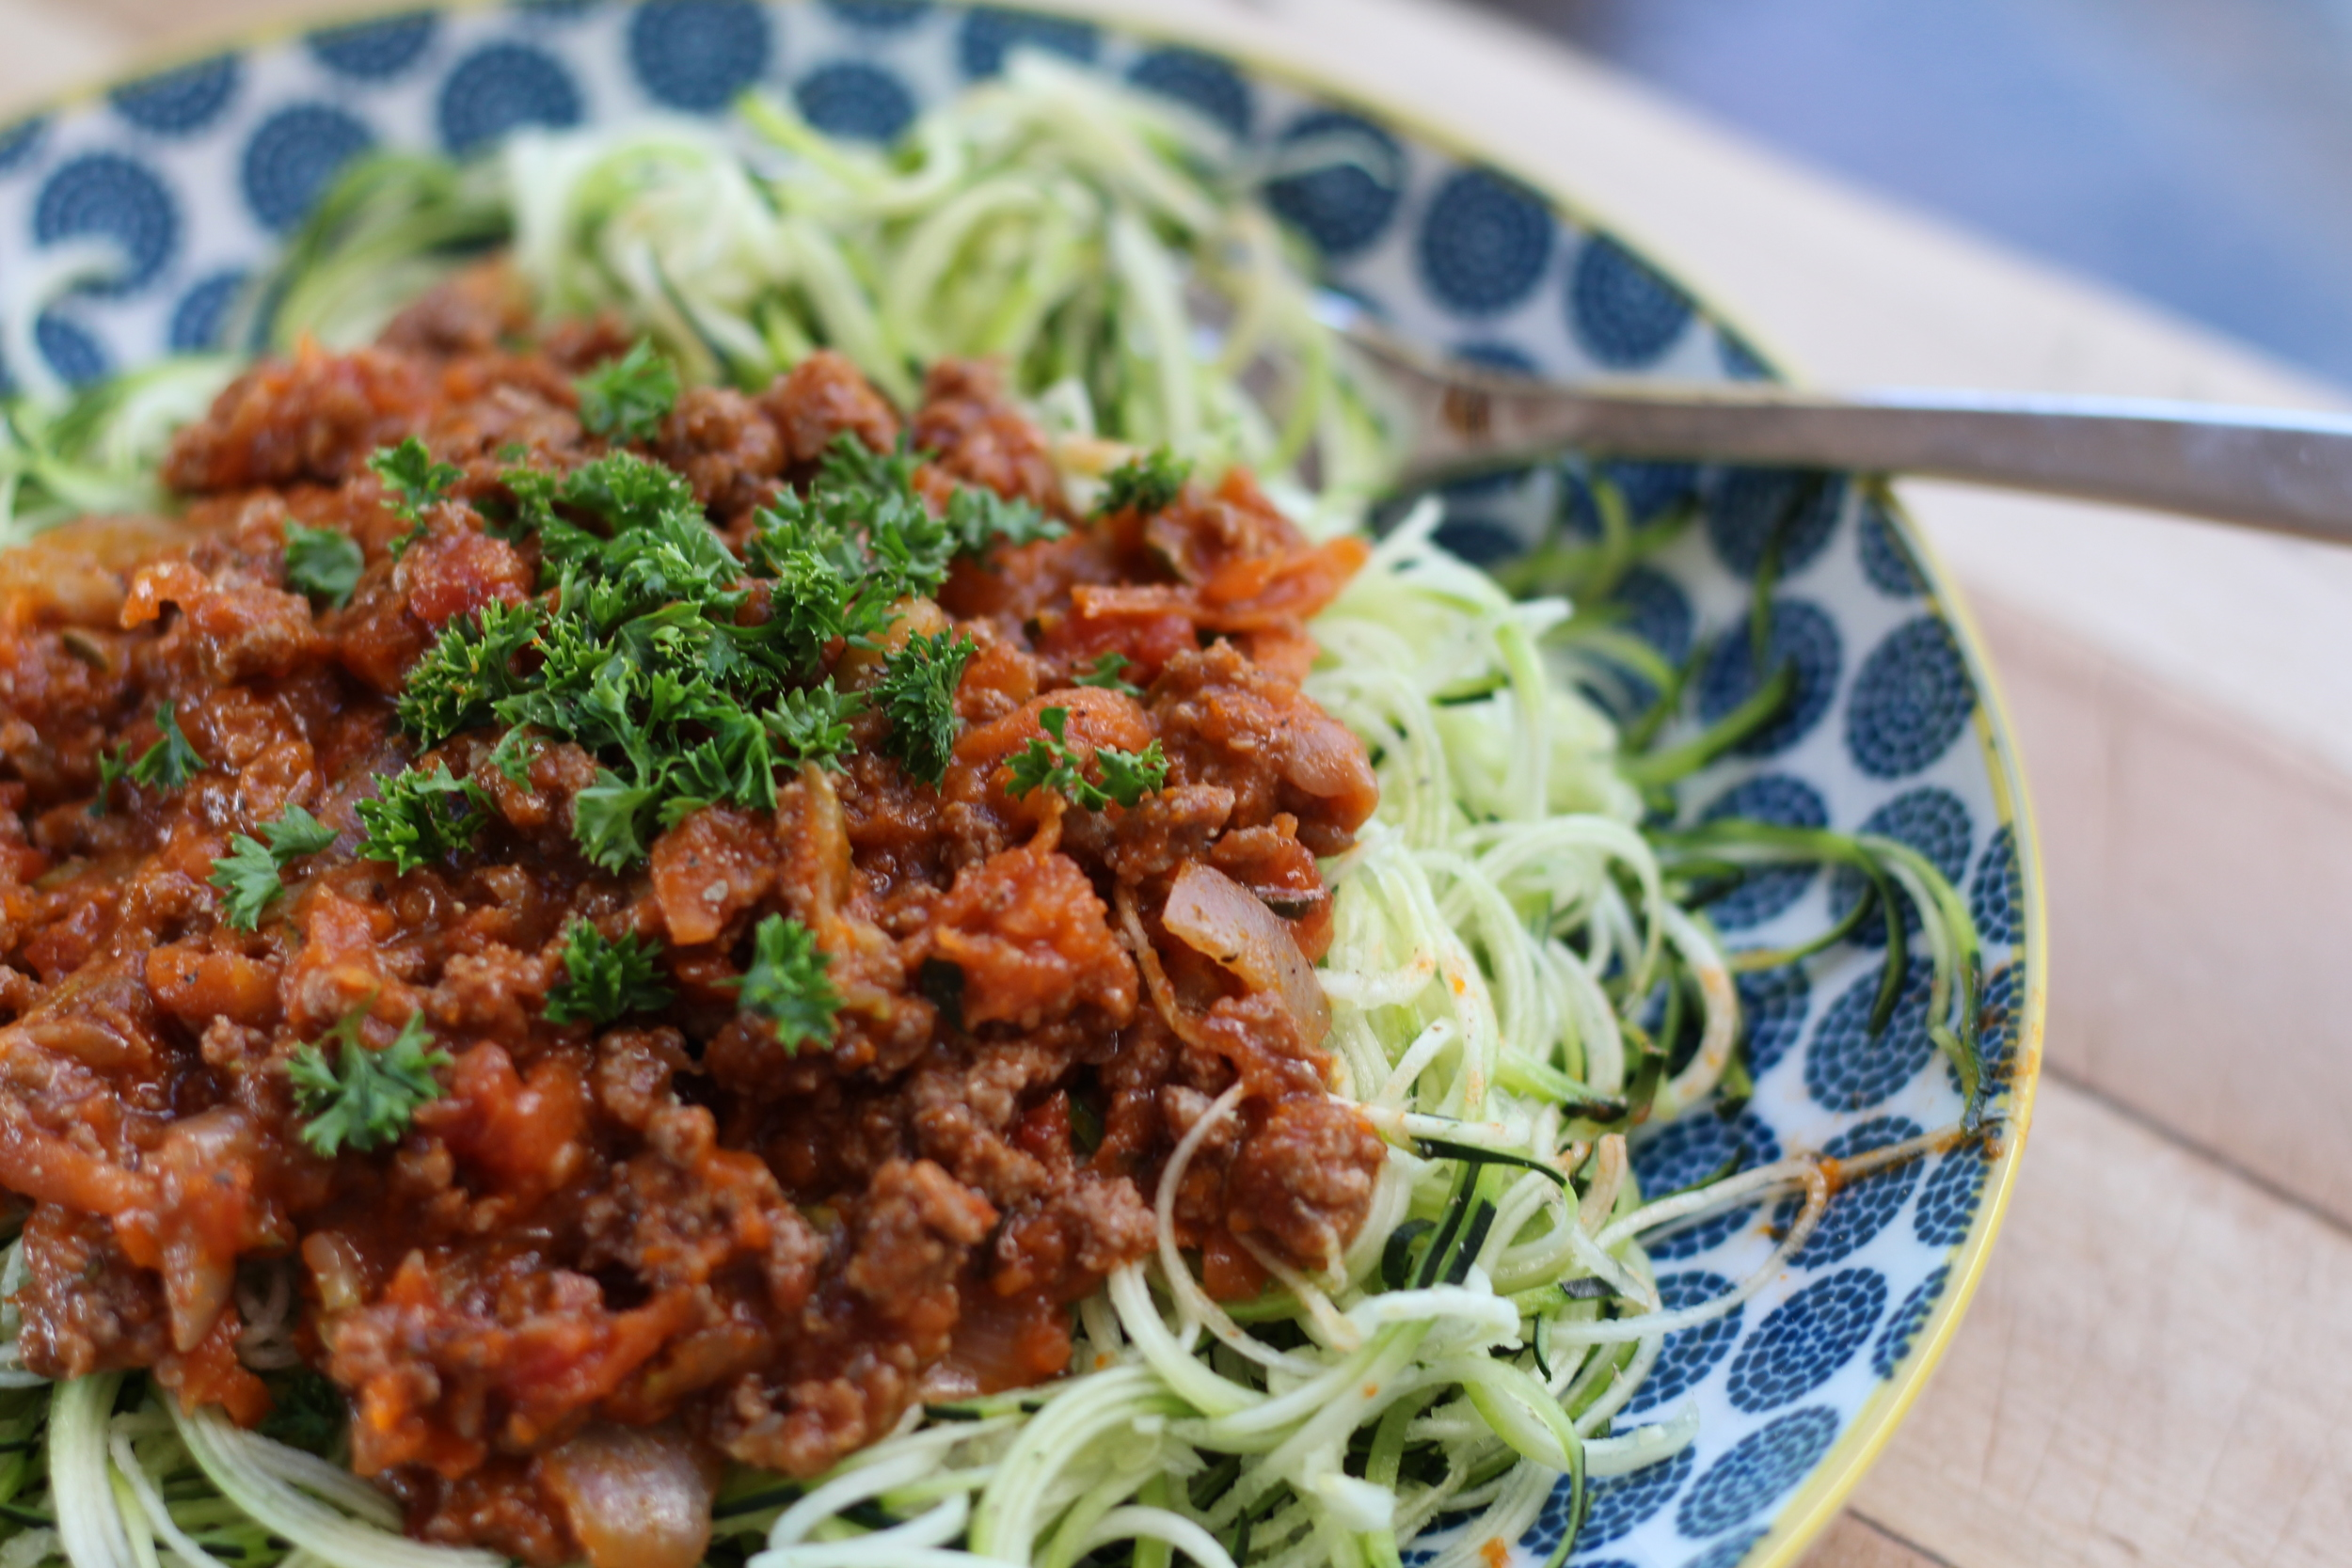 Spaghetti bolognese on courgette noodles